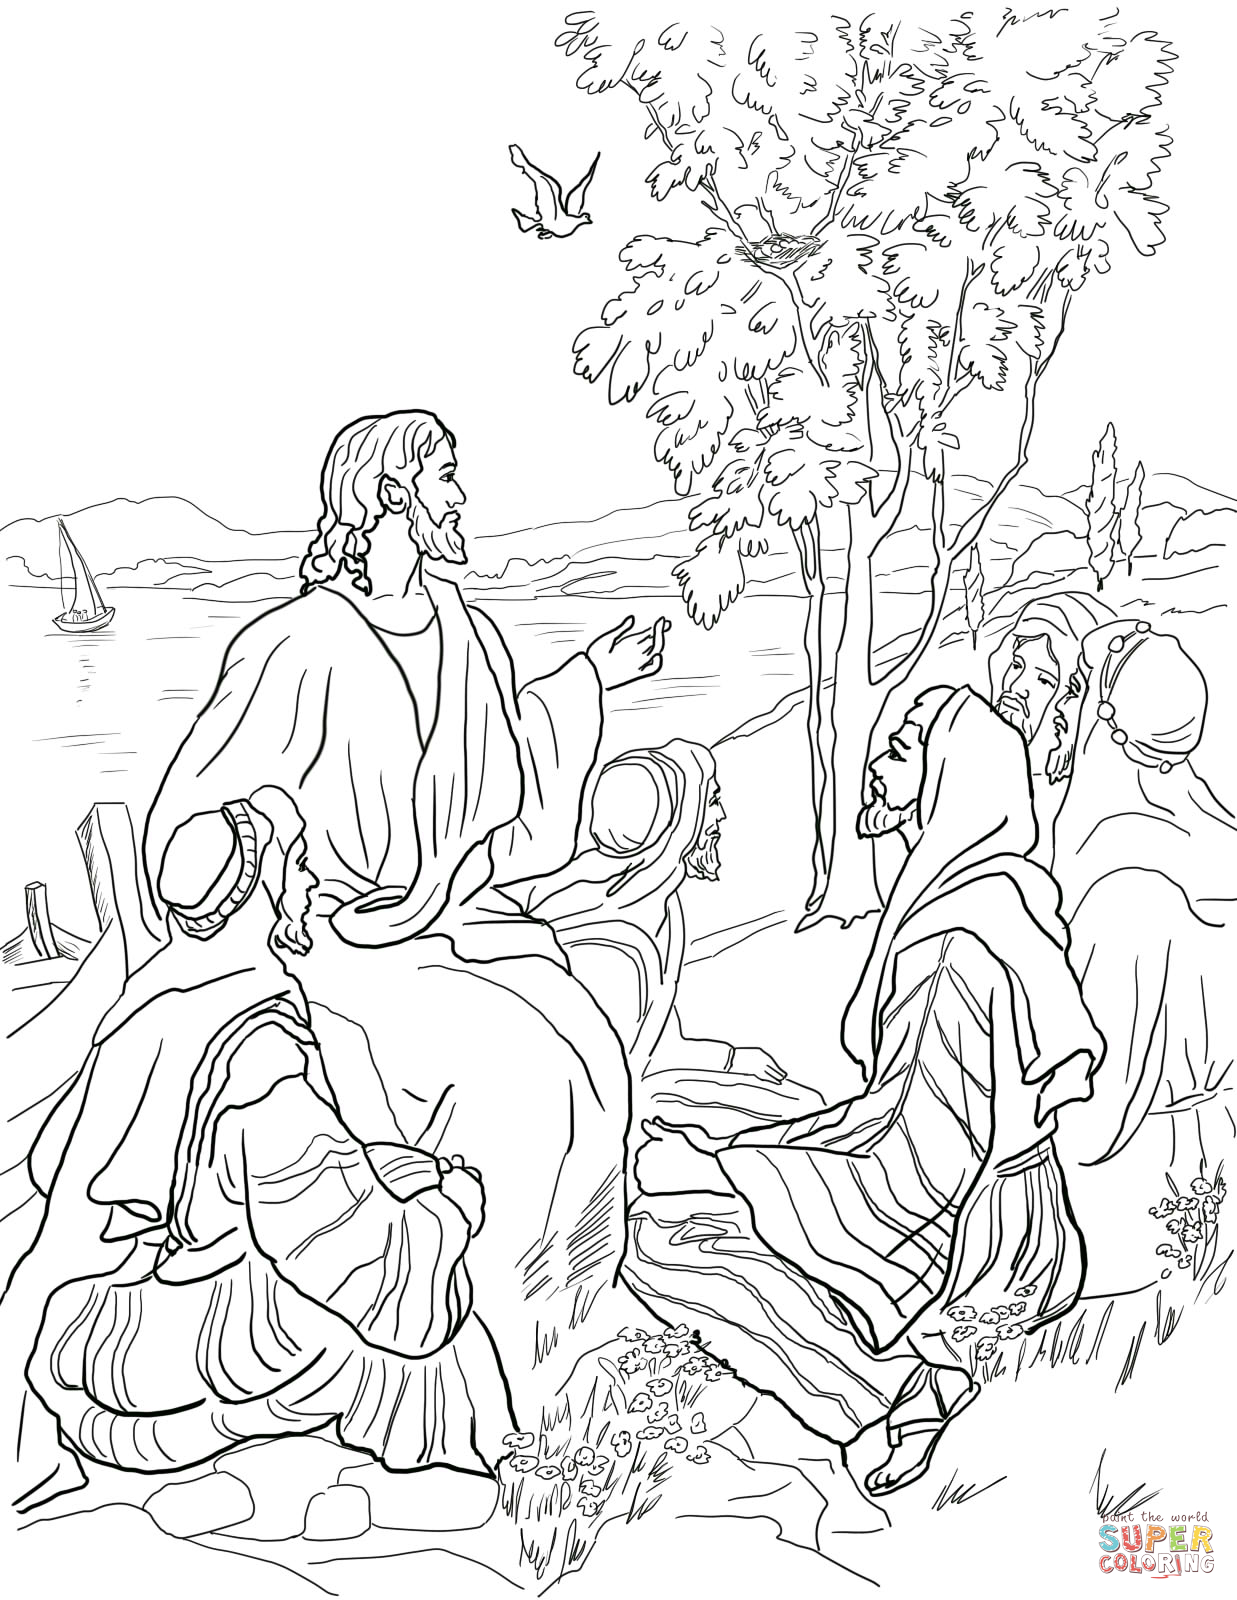 1237x1600 Mustard Tree Parable Coloring Pages Parable Of Mustard Seed